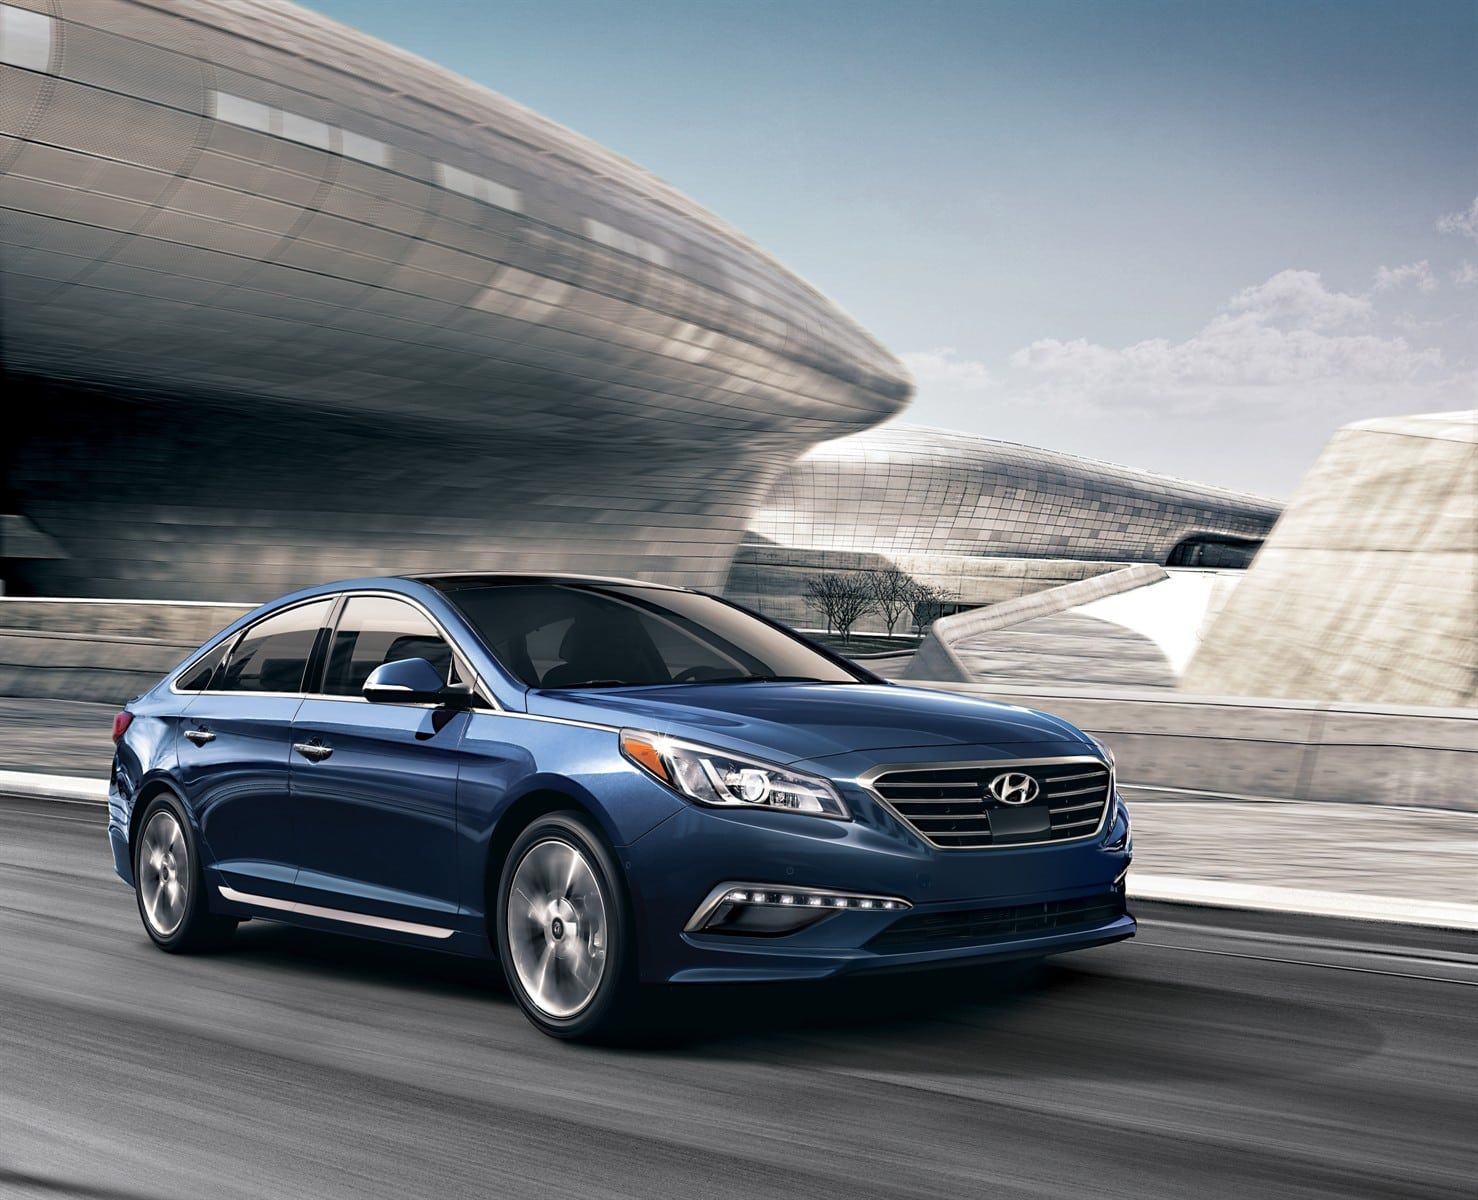 2015 Hyundai Sonata – Follows a familiar Path to Success